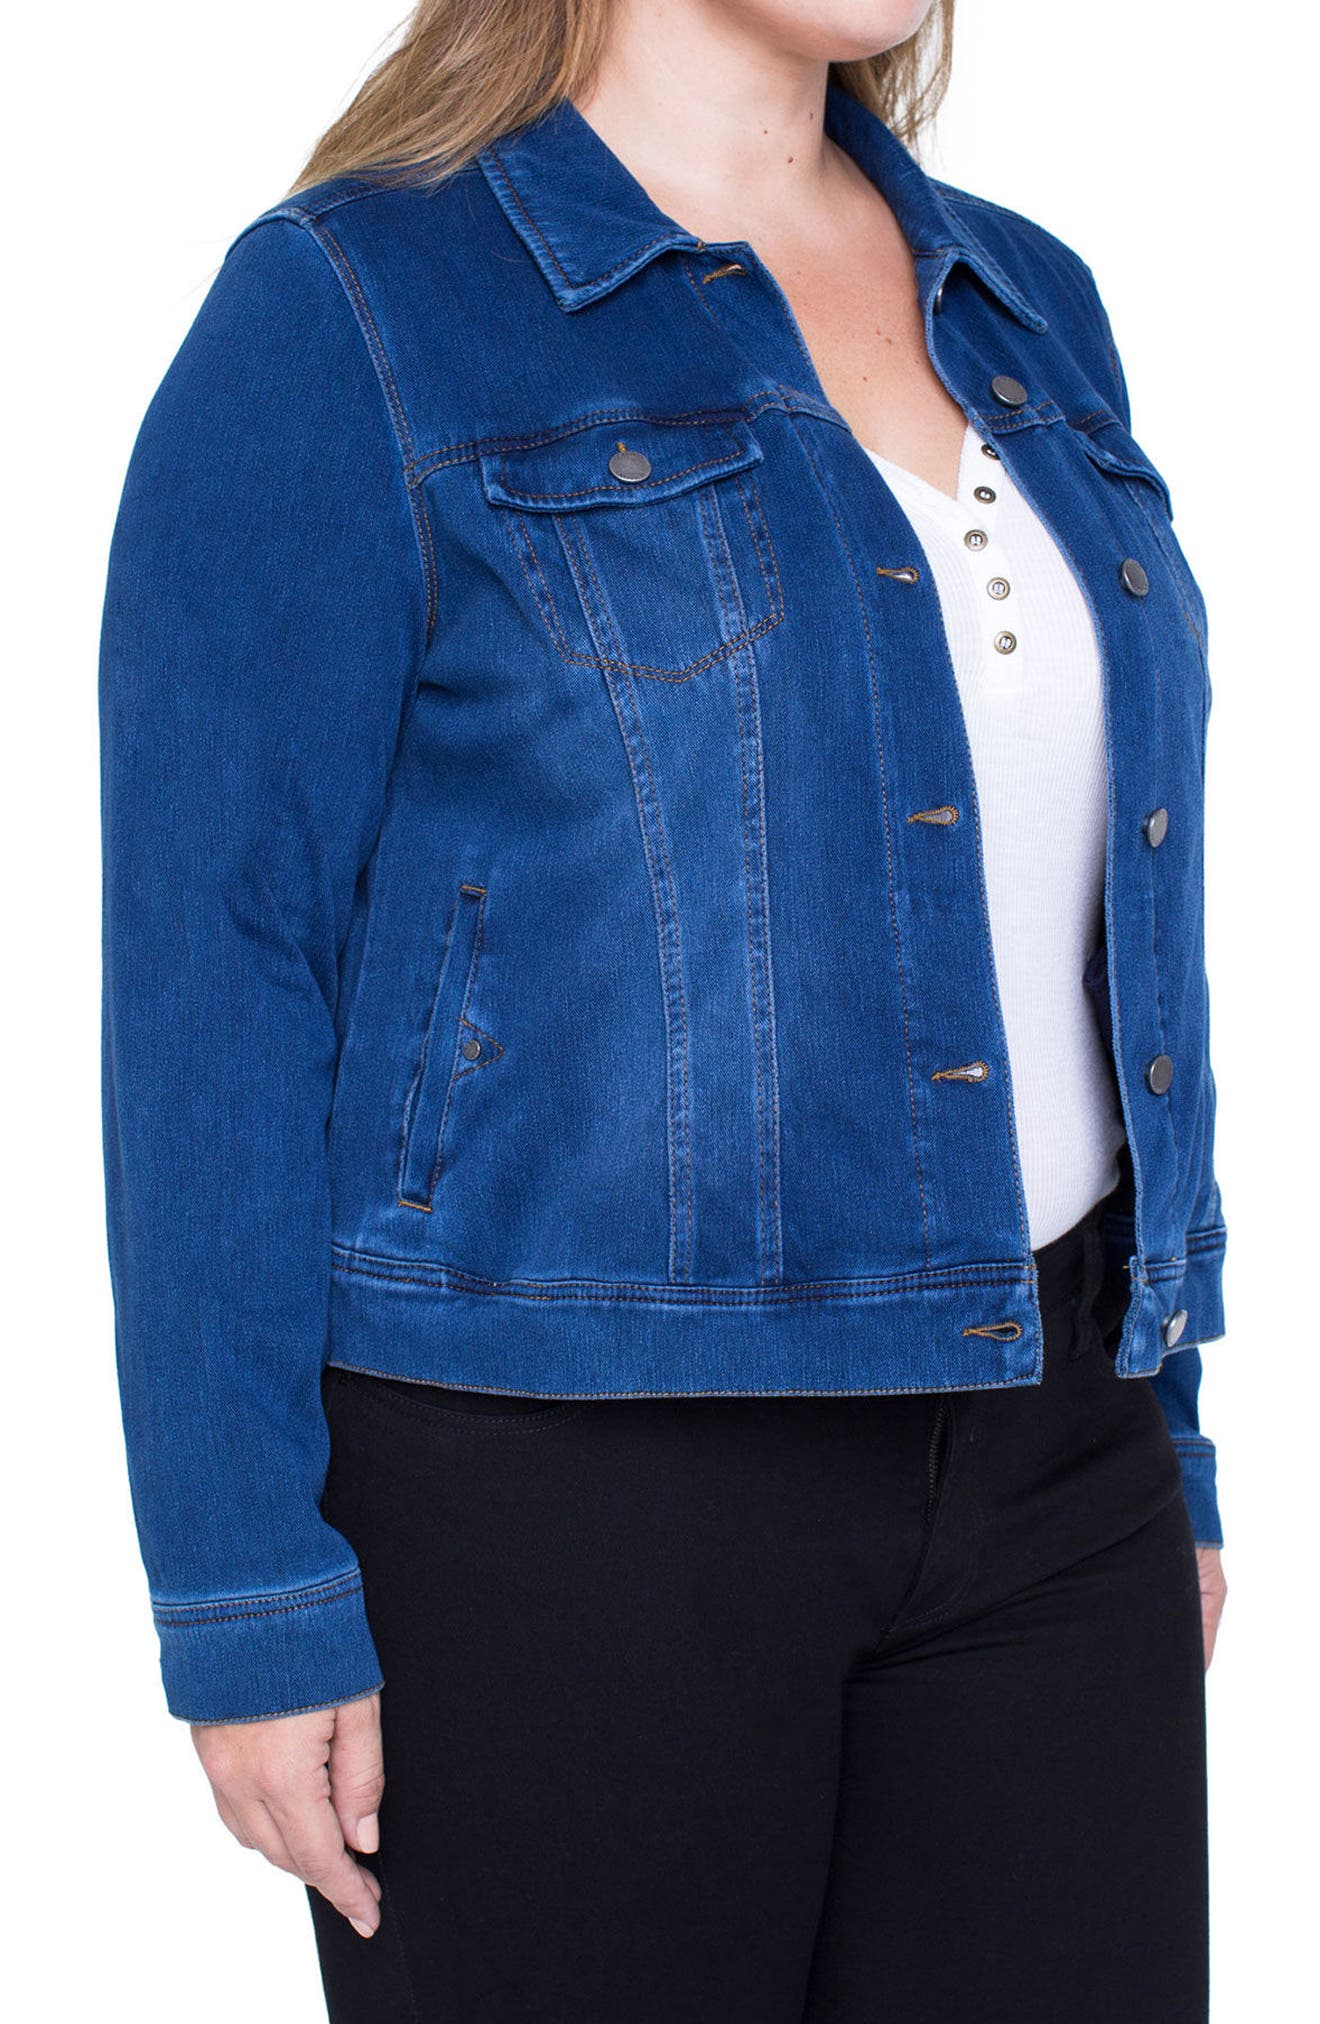 Alternate Image 3  - Liverpool Jeans Company Denim Knit Jacket (Plus Size)